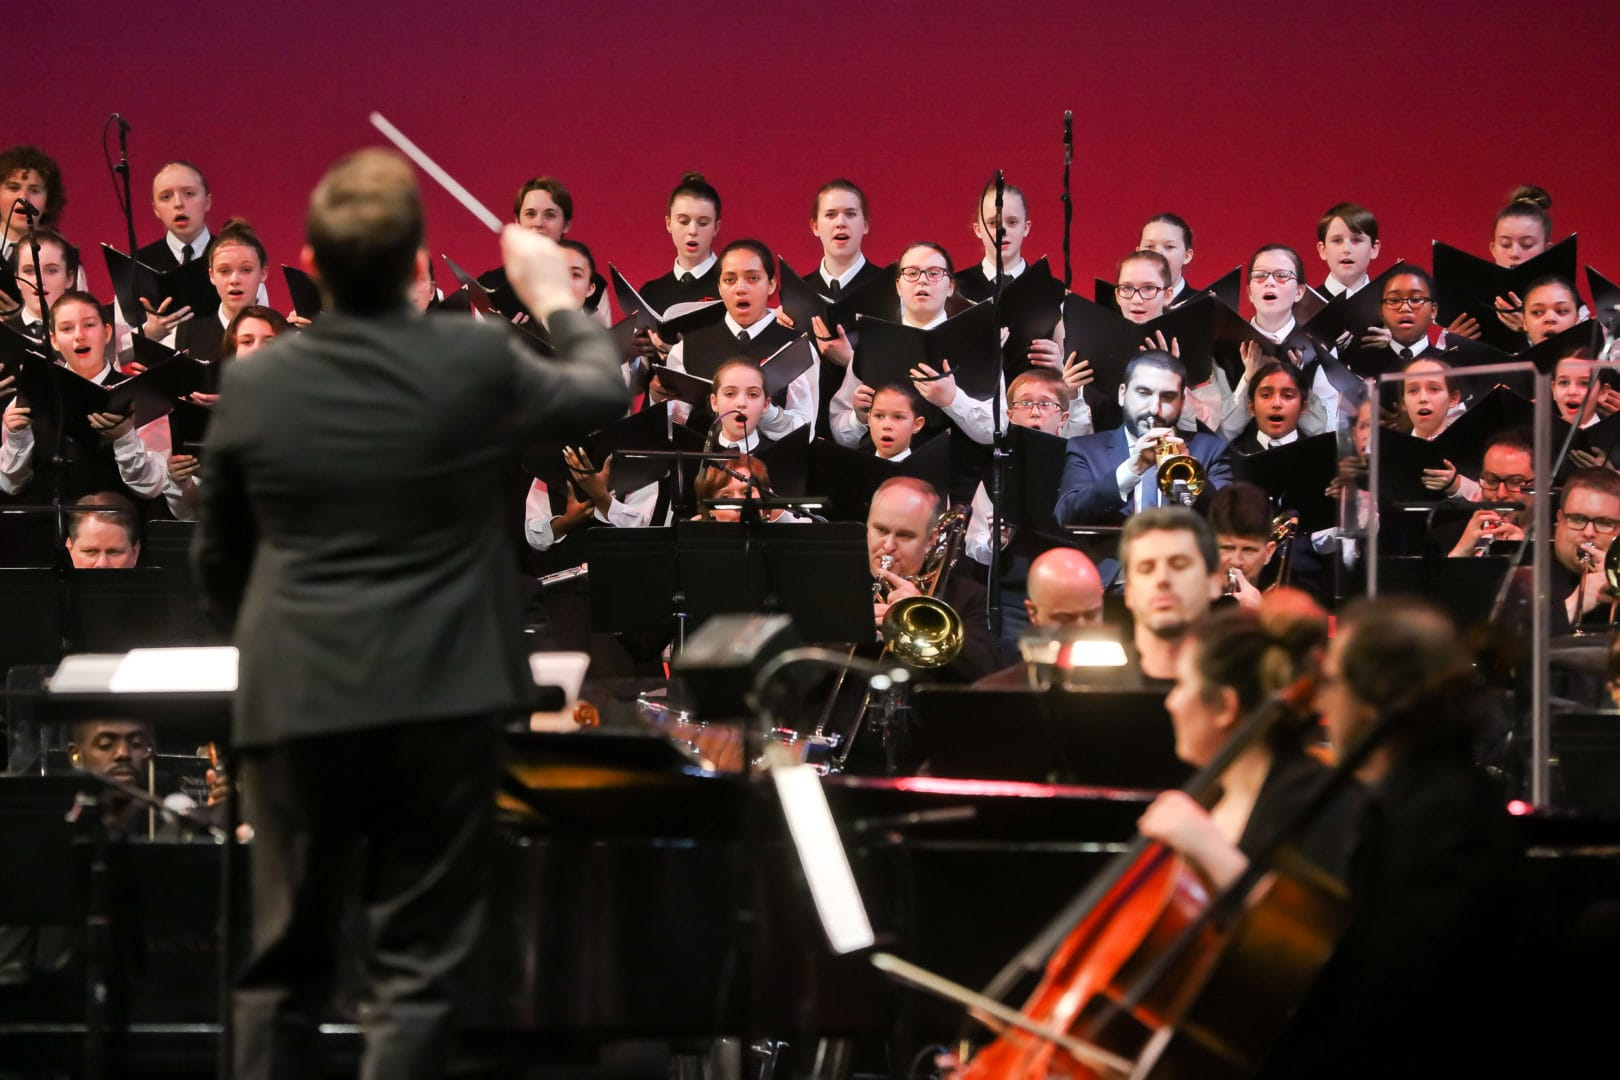 <h3>Michael Rossi conducts the orchestra, along with Ibrahim Maalouf (center-right) and the National Children's Choir.</h3>